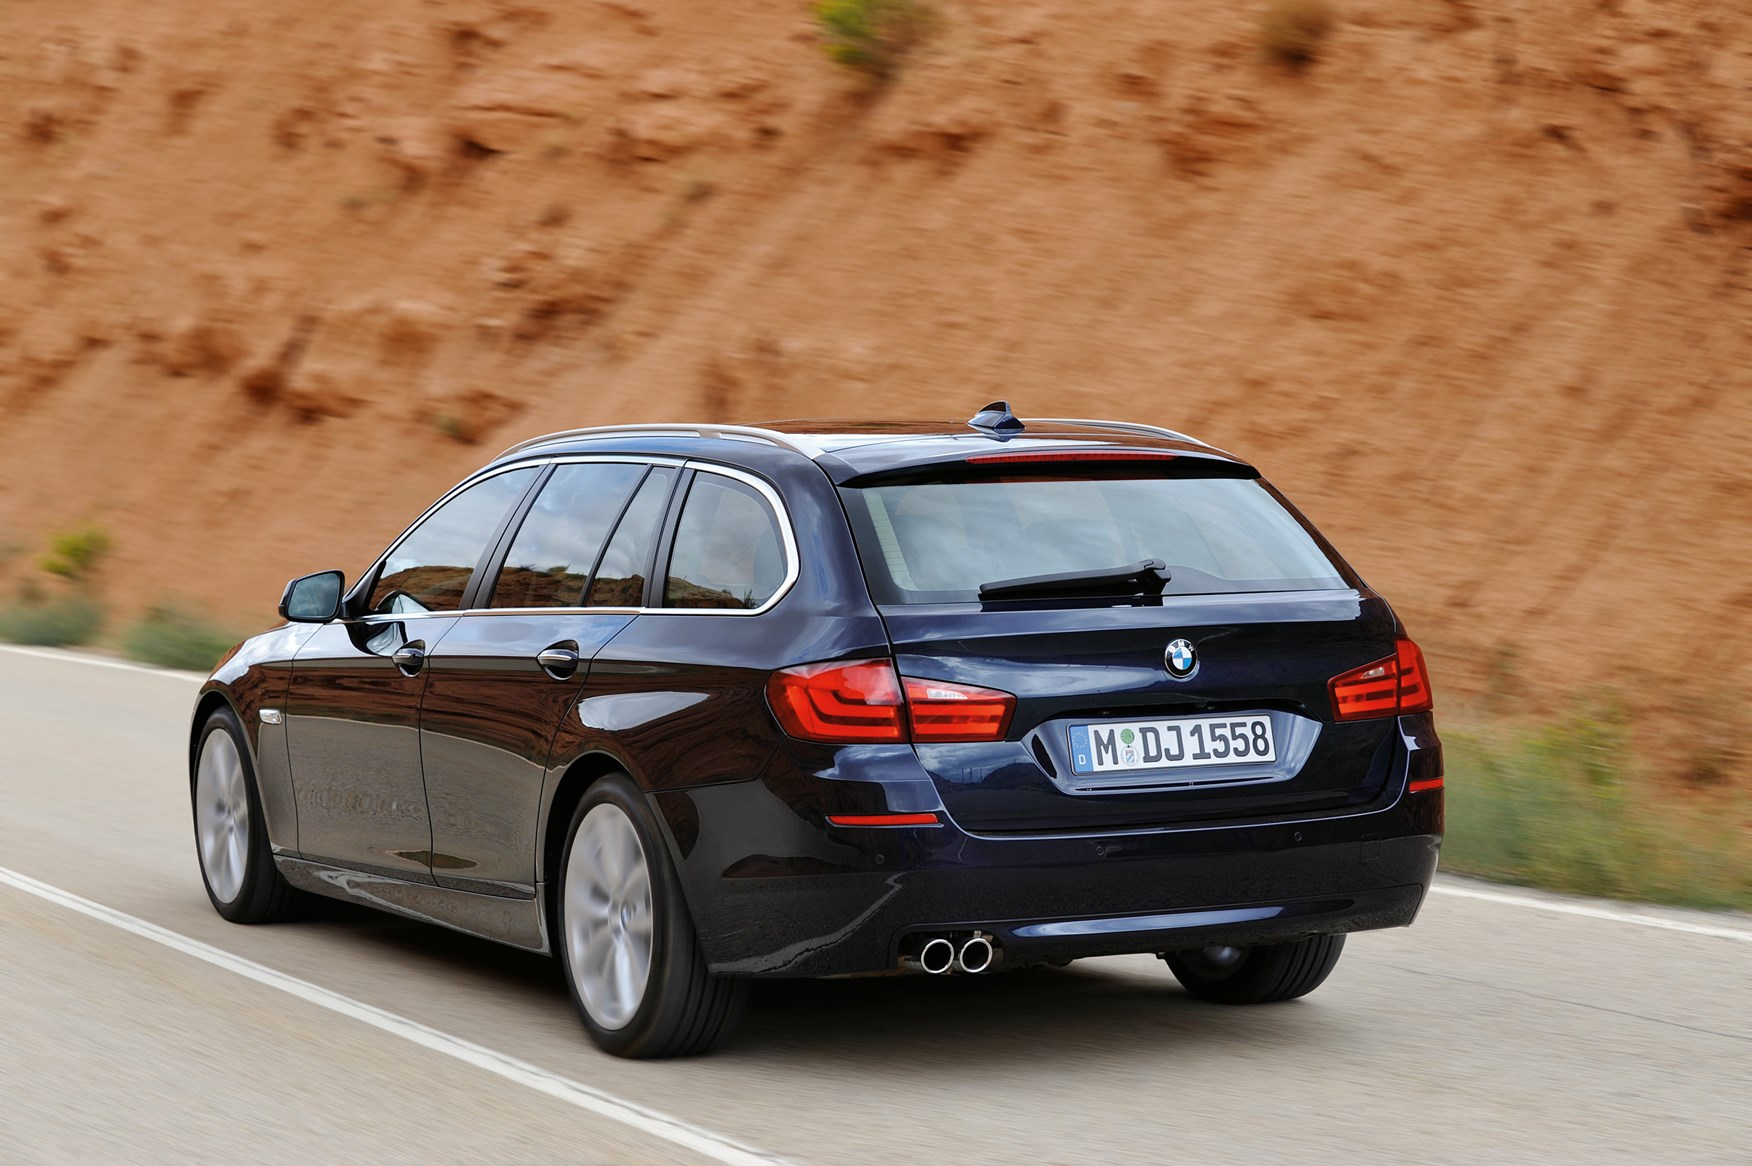 BMW 5-Series Touring Review (2010 - )